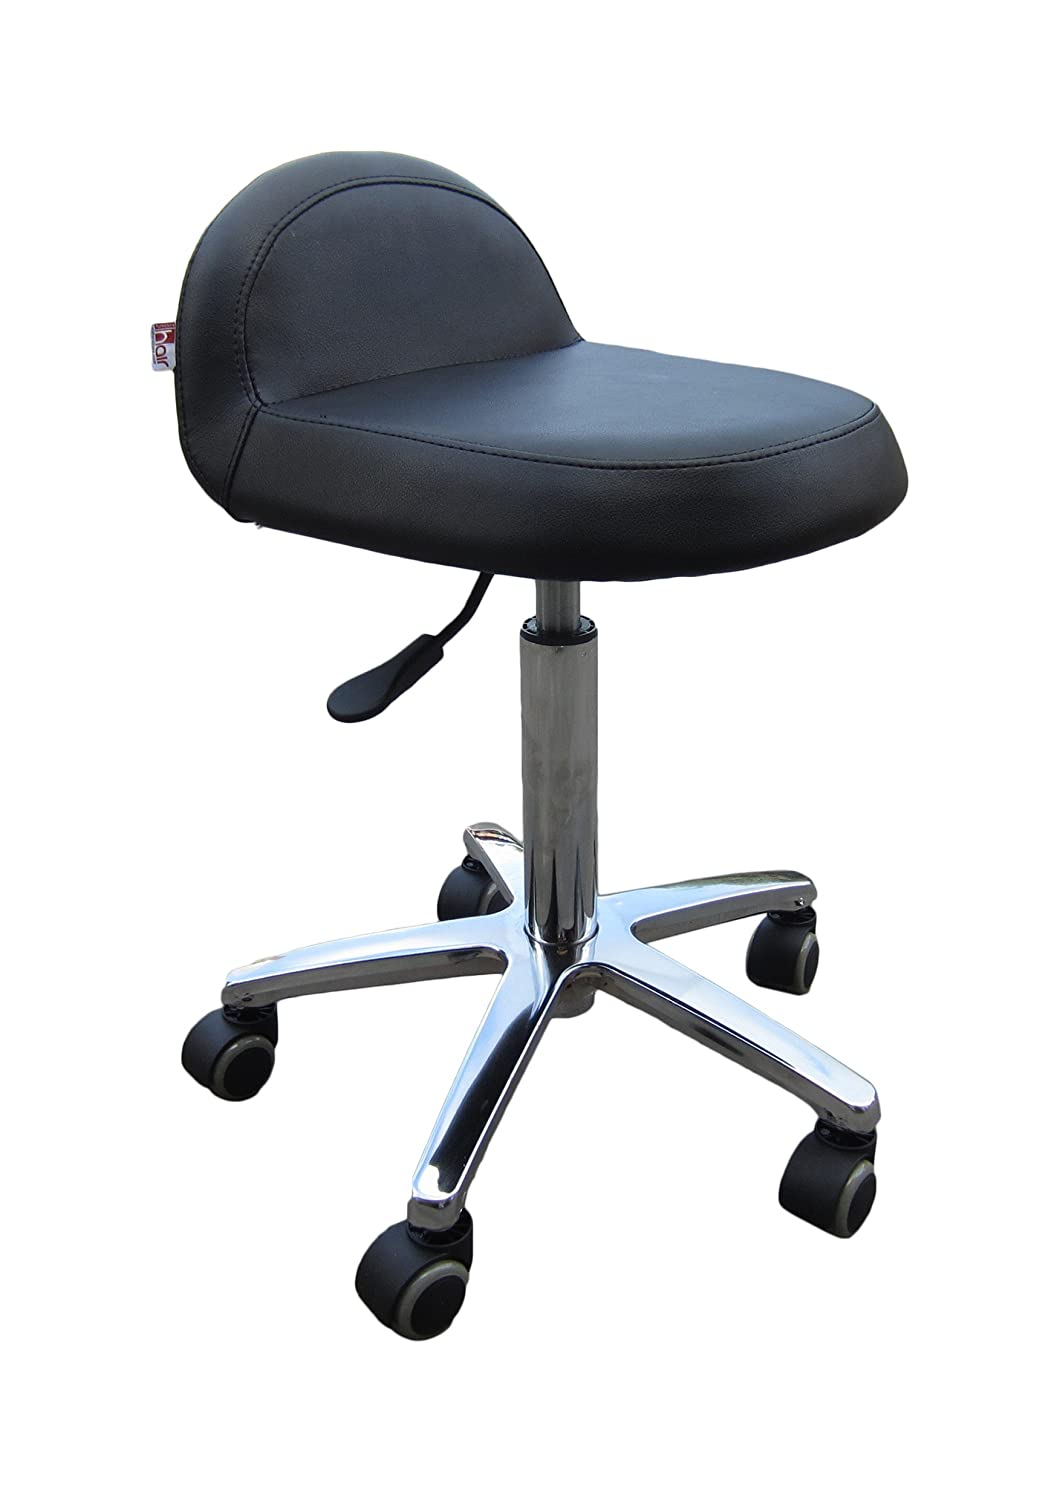 Hair Furniture Orfe Spin Styling Stylist Cutting Stool with a back support, dentist, tattooist, optician, reception, office stool, Fast UK Delivery 001-011-006-C045-01